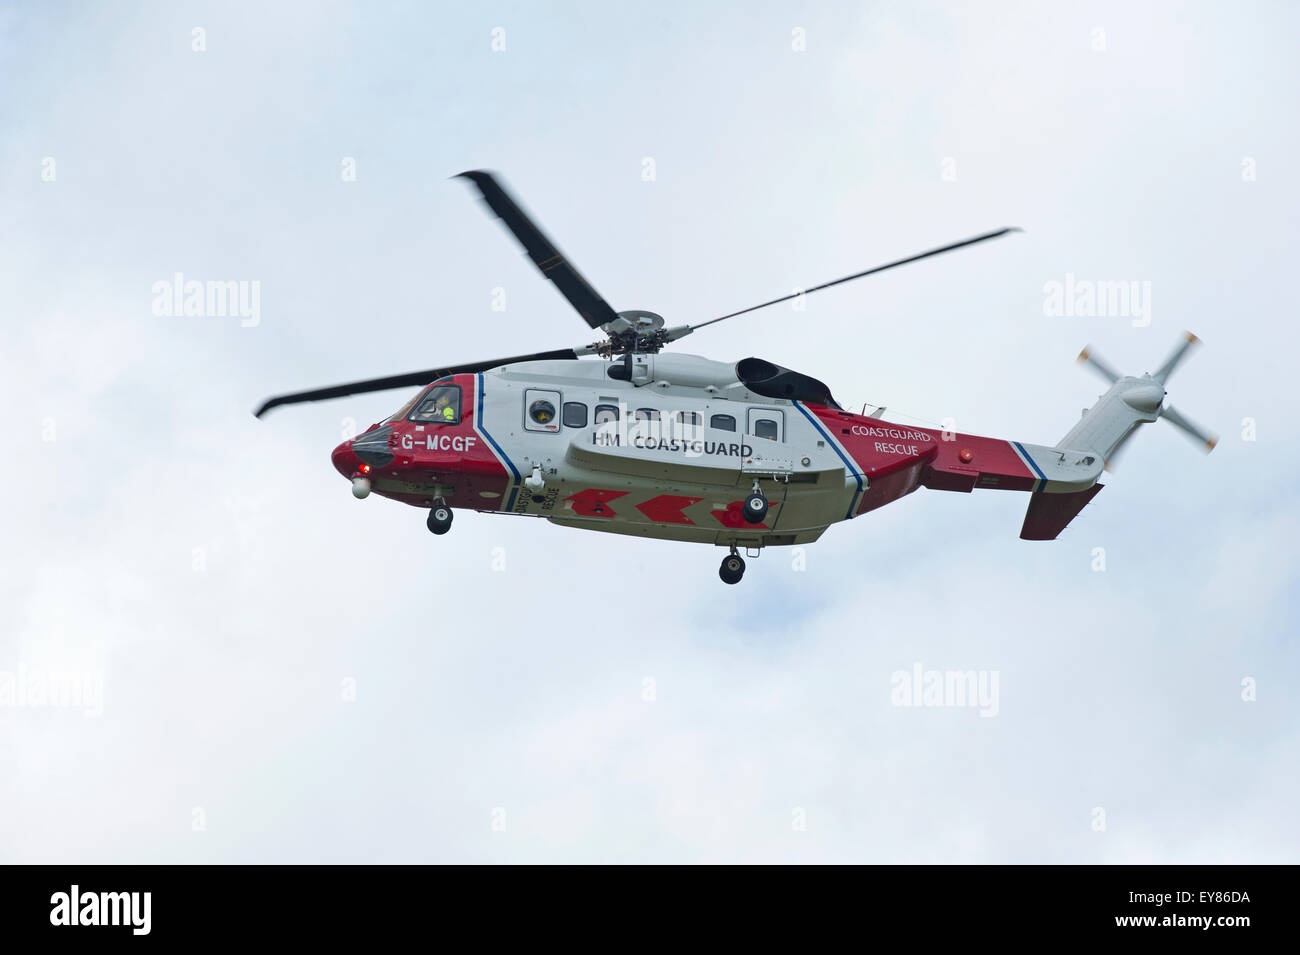 The Scottish Search and Rescue Coastguard S92A helicopter (G-MCGF) based at Inverness.  SCO 10,005. - Stock Image